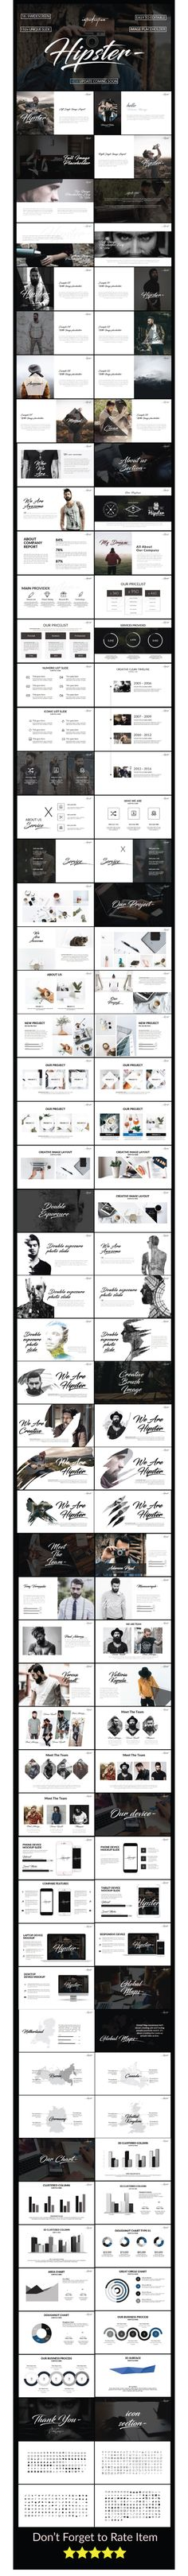 Hipster Powerpoint Presentation Template